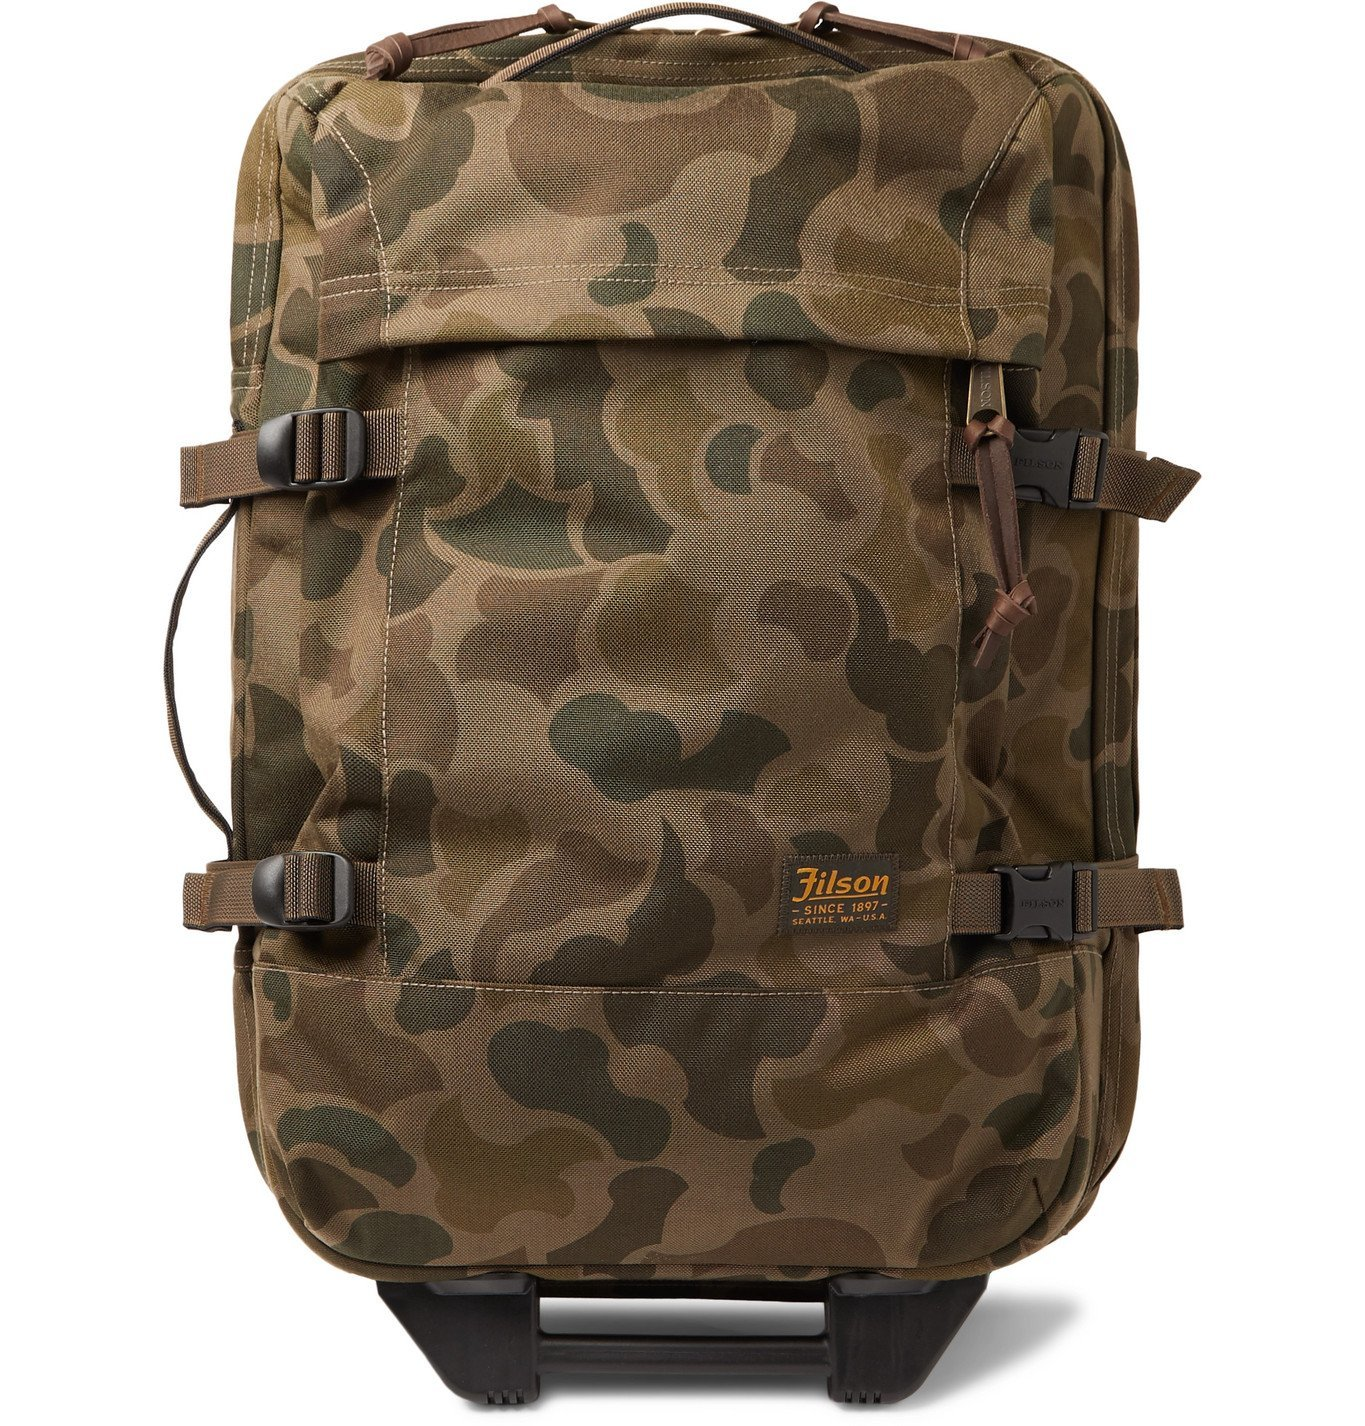 Filson - Dryden Canvas Carry-On Suitcase - Green